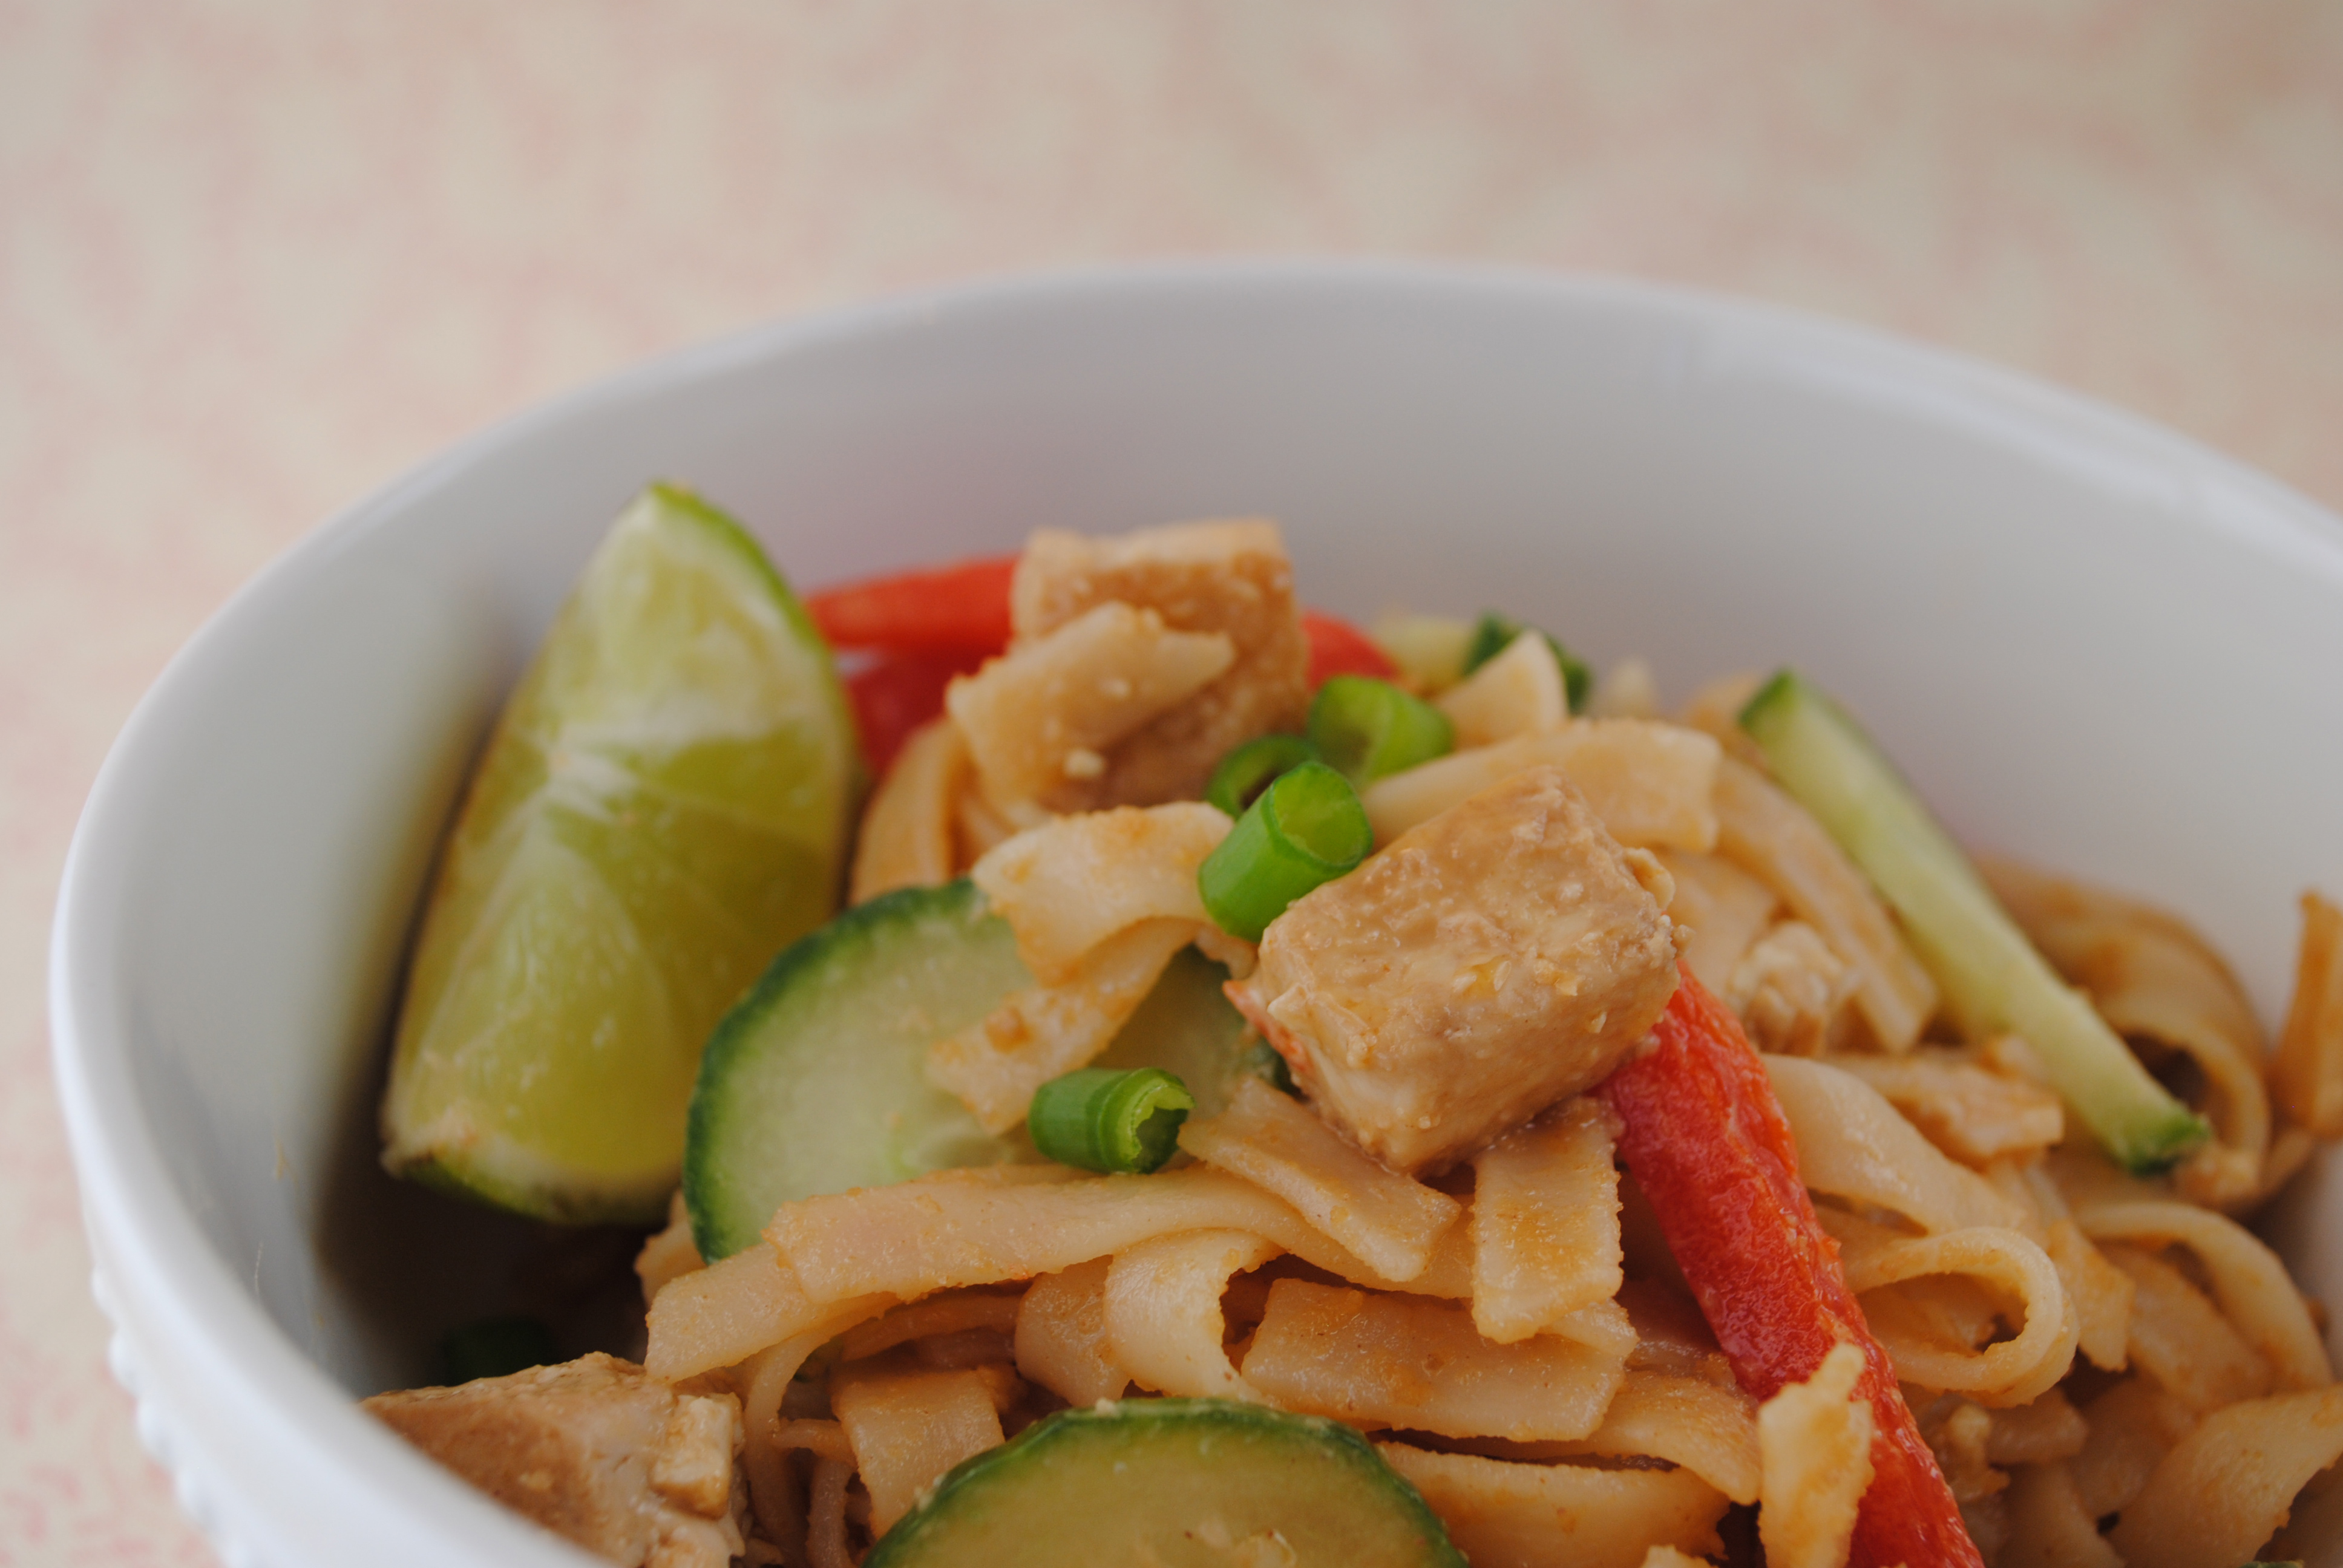 Vegan Thai Noodles and Tofu with a Spicy Peanut Sauce